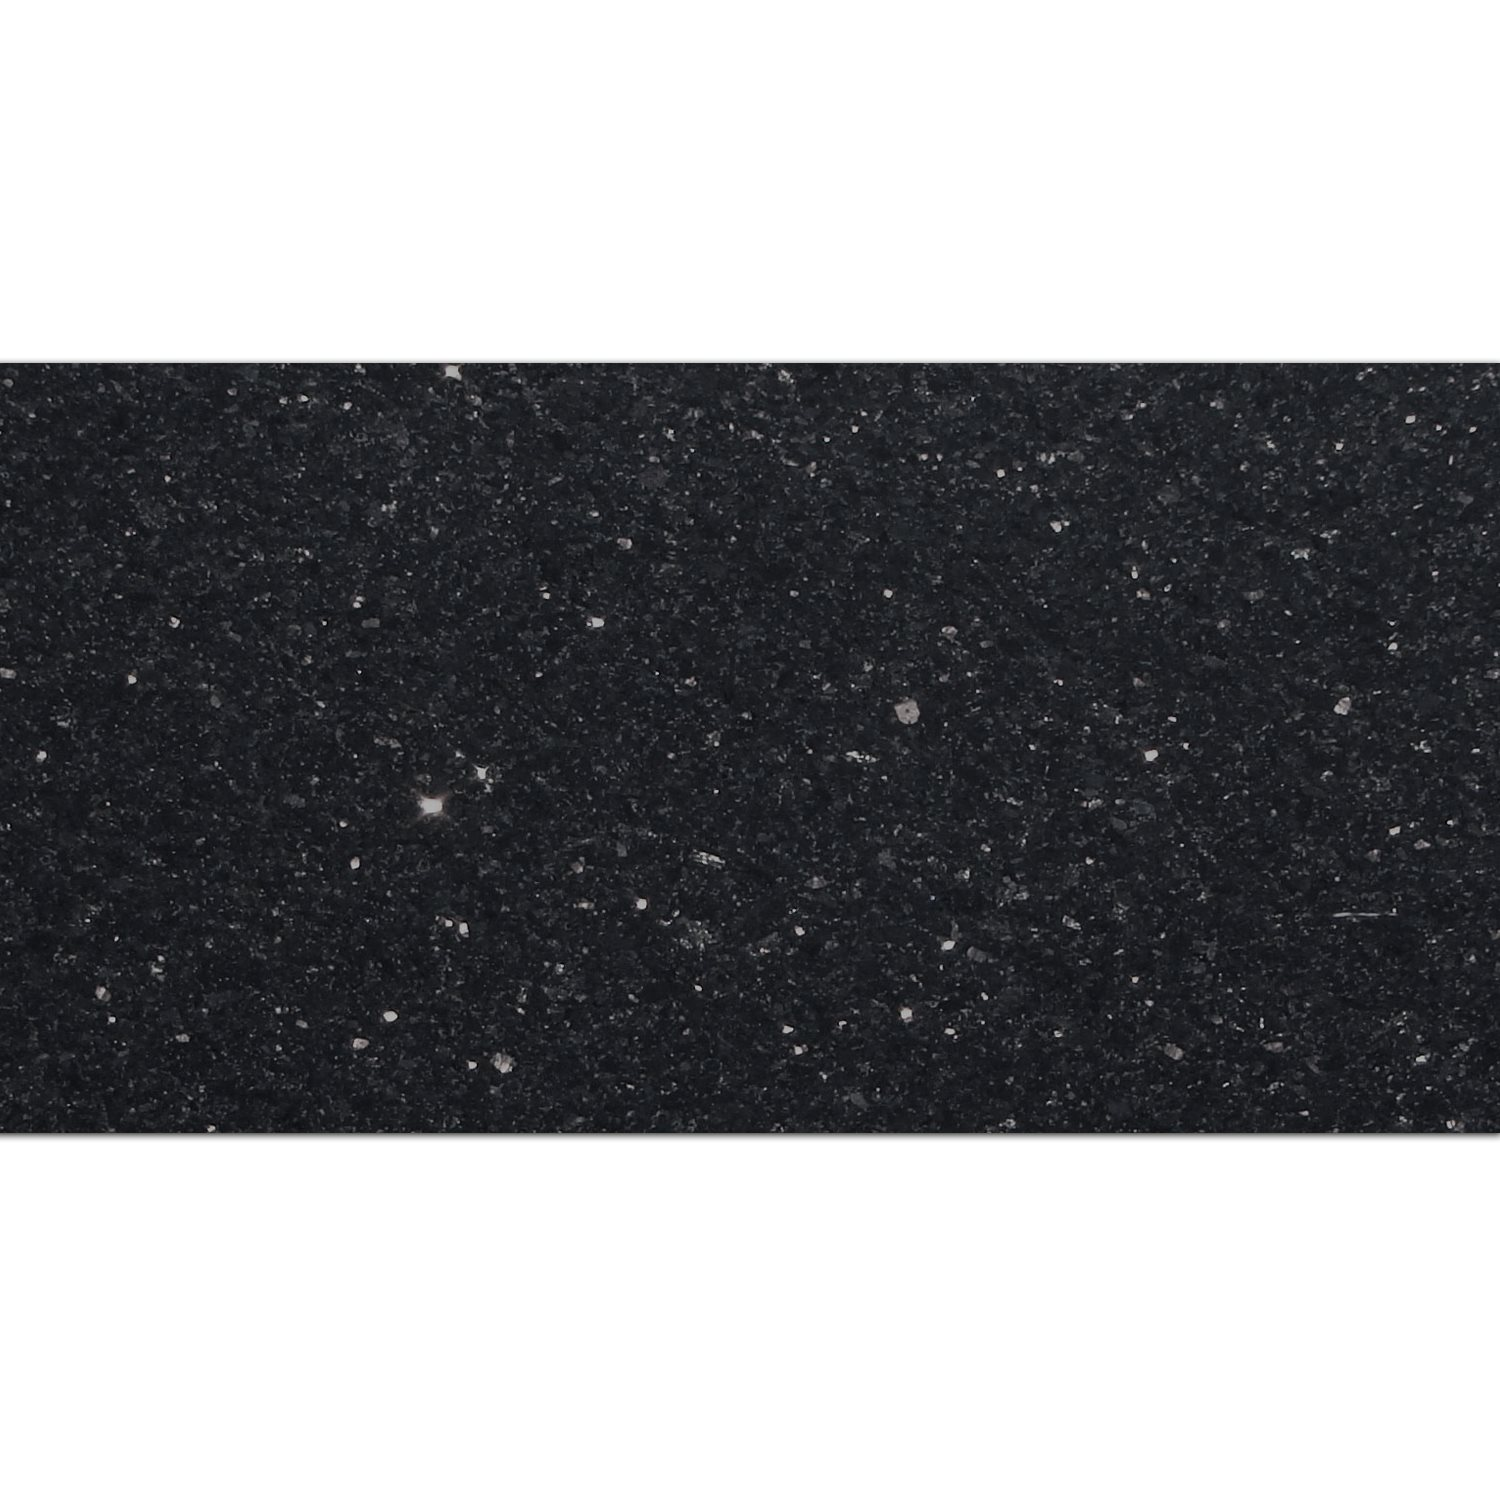 Natural stone tiles granite star galaxy polished 305x61cm ran48347 natural stone tiles granite star galaxy polished 305x61cm dailygadgetfo Images